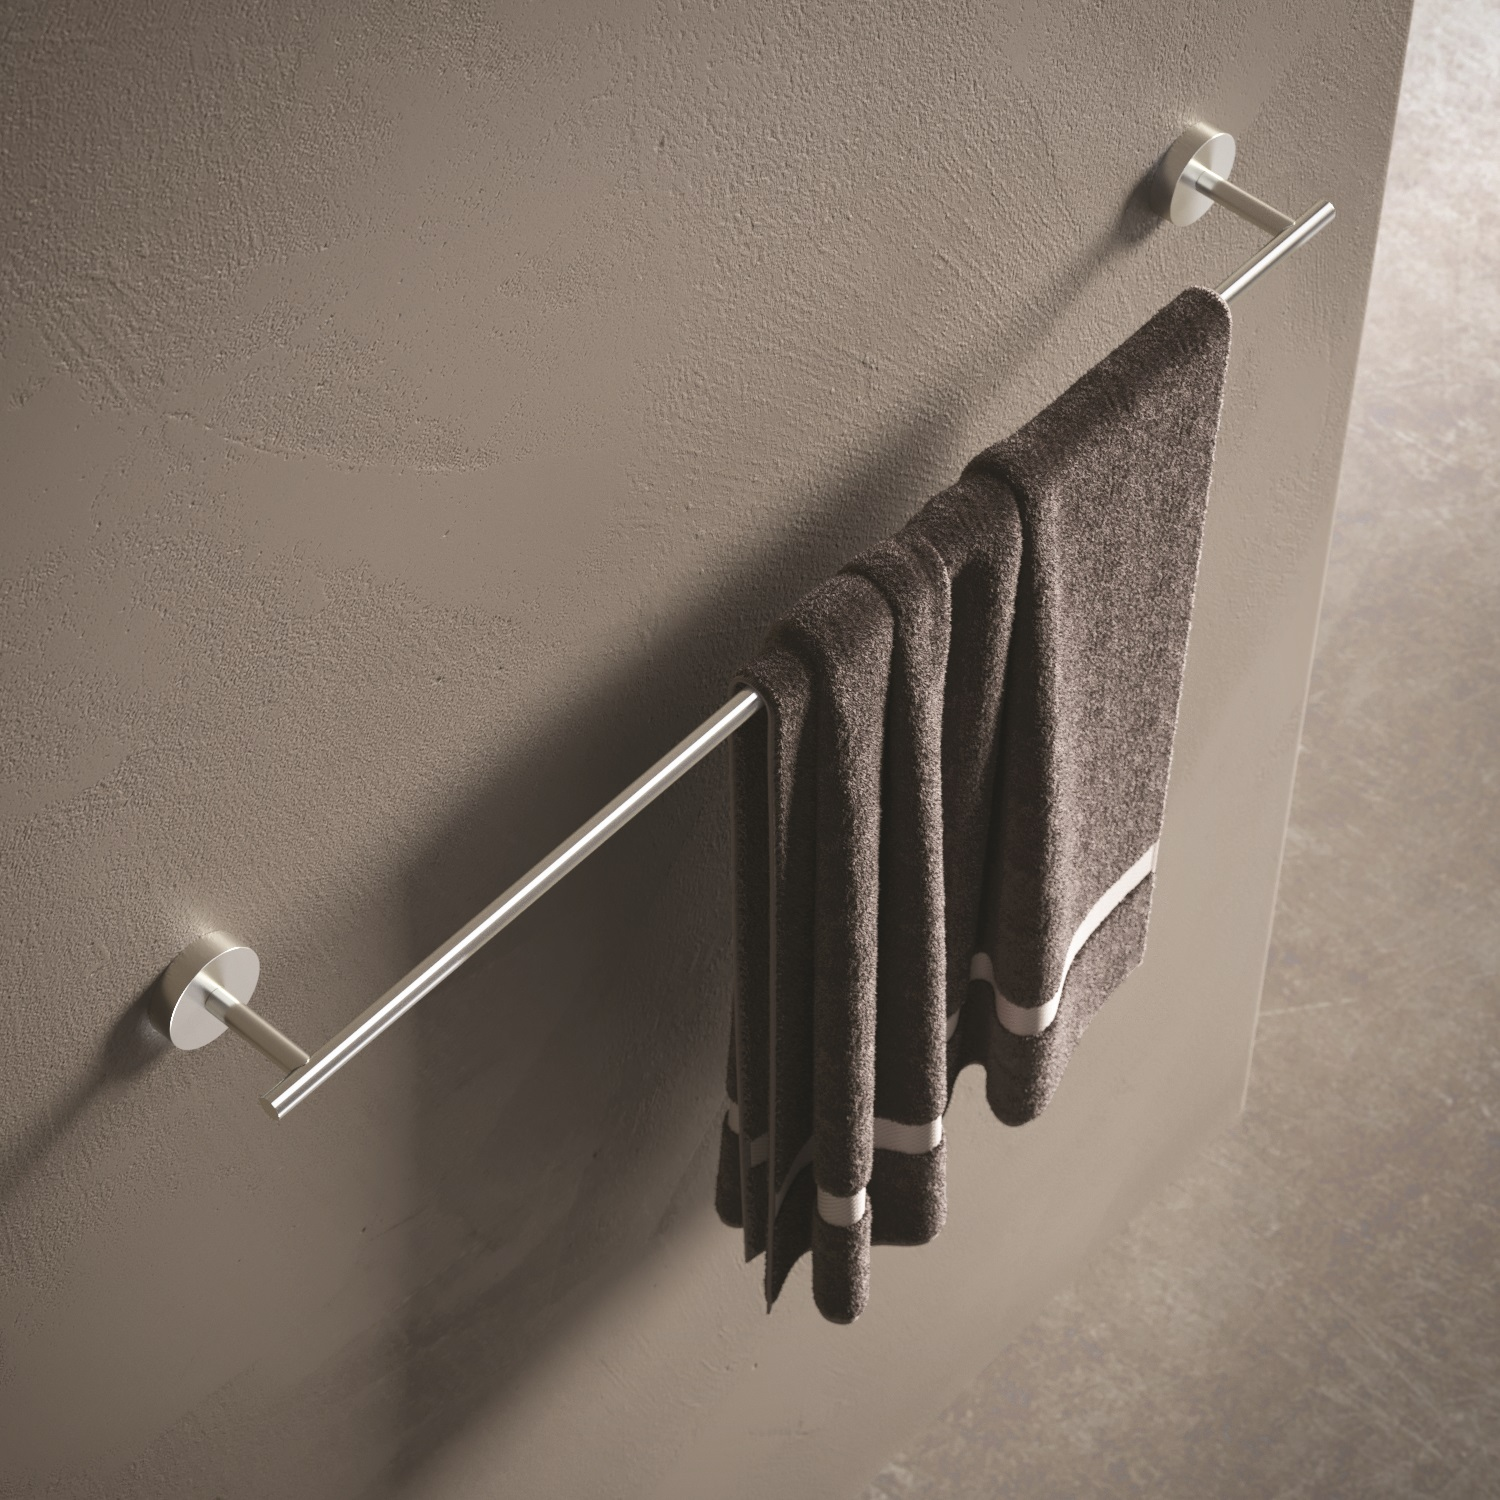 Archie ARA07 Stainless Steel Towel Bar 24 inches